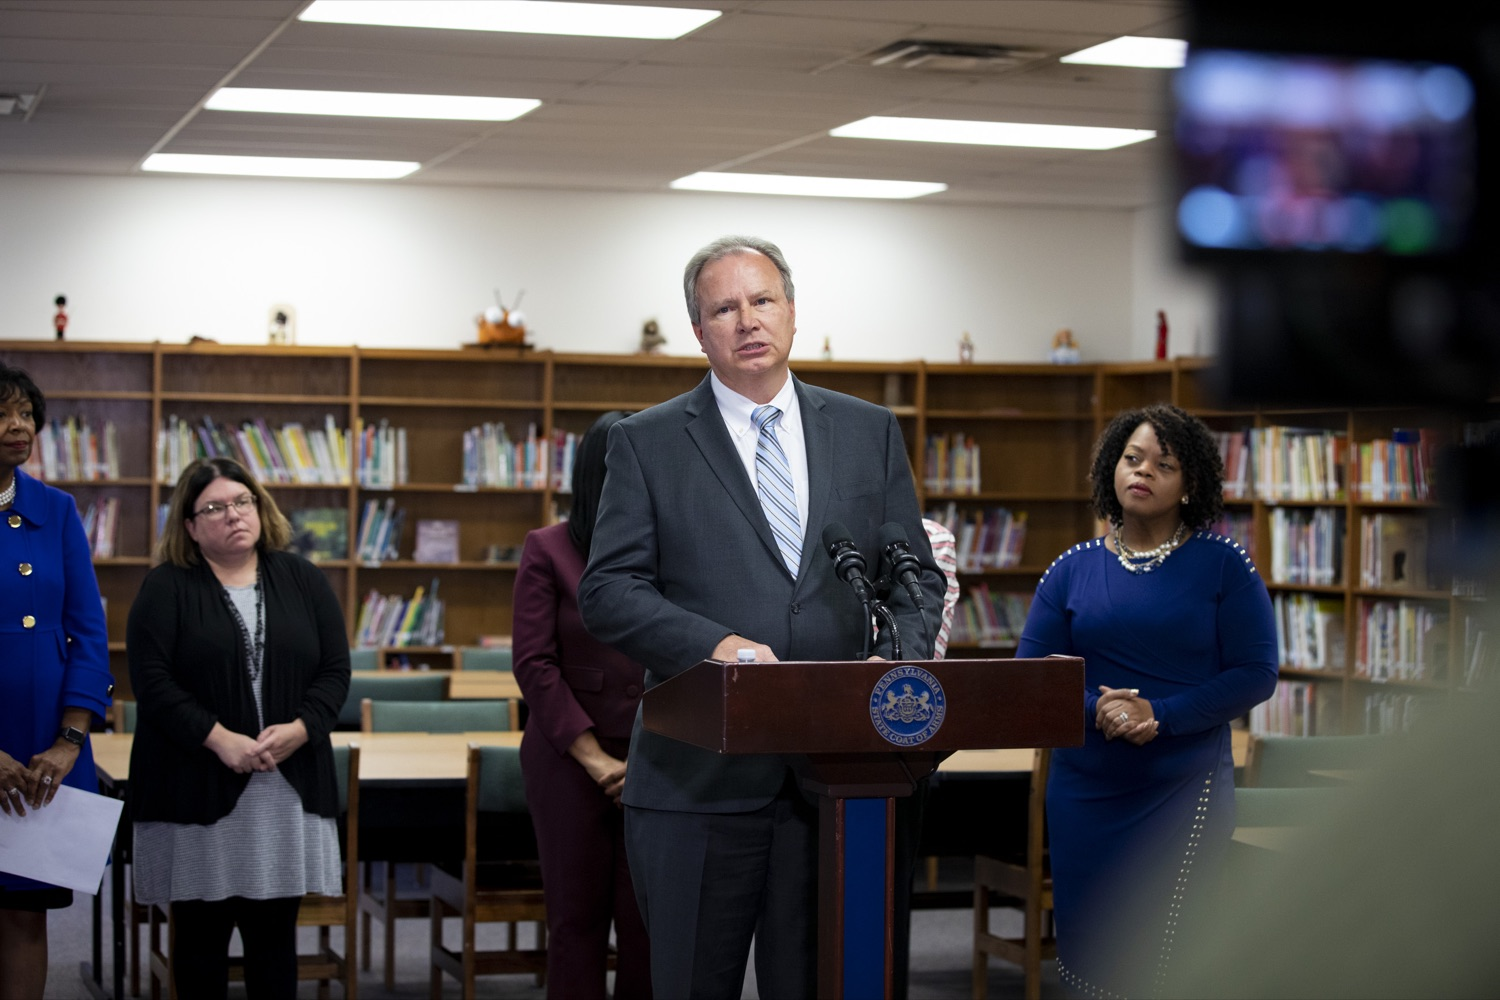 "<a href=""https://filesource.wostreaming.net/commonwealthofpa/photo/17611_AUD_GEN_HBG_AUDIT_UPDATE_CZ_11.JPG"" target=""_blank"">⇣ Download Photo<br></a>Harrisburg School District Financial Recovery Plan Service Director John J. George discusses the potential consequences of a recent legislative proposal, House Bill 1800, at Foose Elementary School in Harrisburg on November 25, 2019."